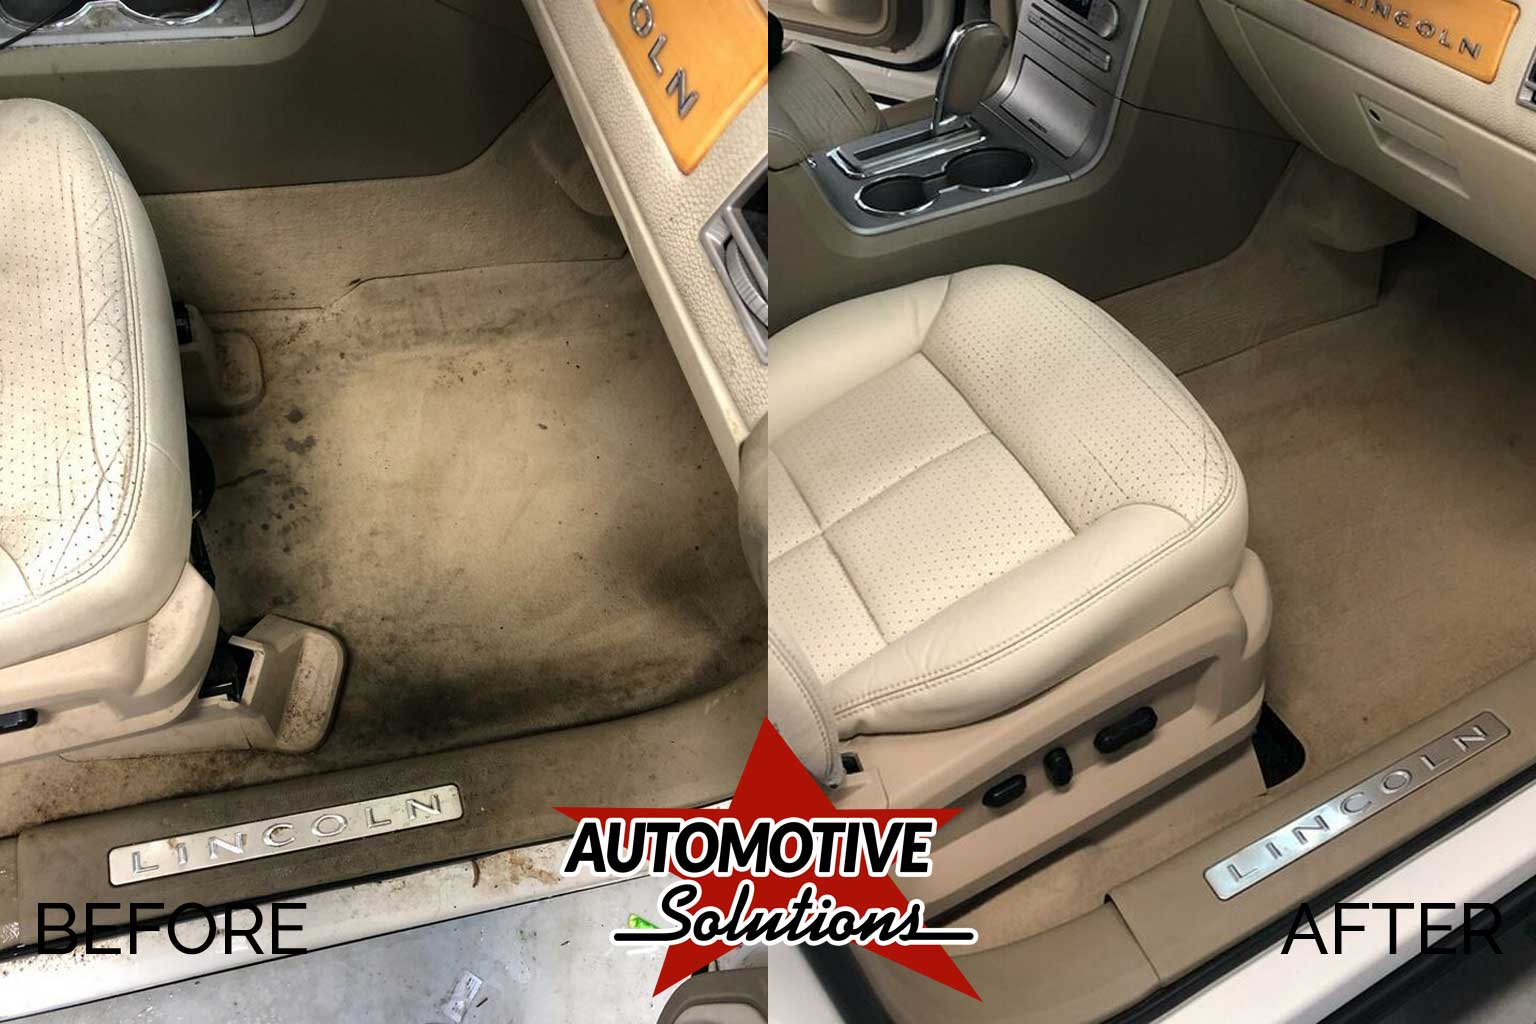 Automotive Solutions offers specialty interior detailing services like carpet cleaning, leather treatments, and complete vacuuming.